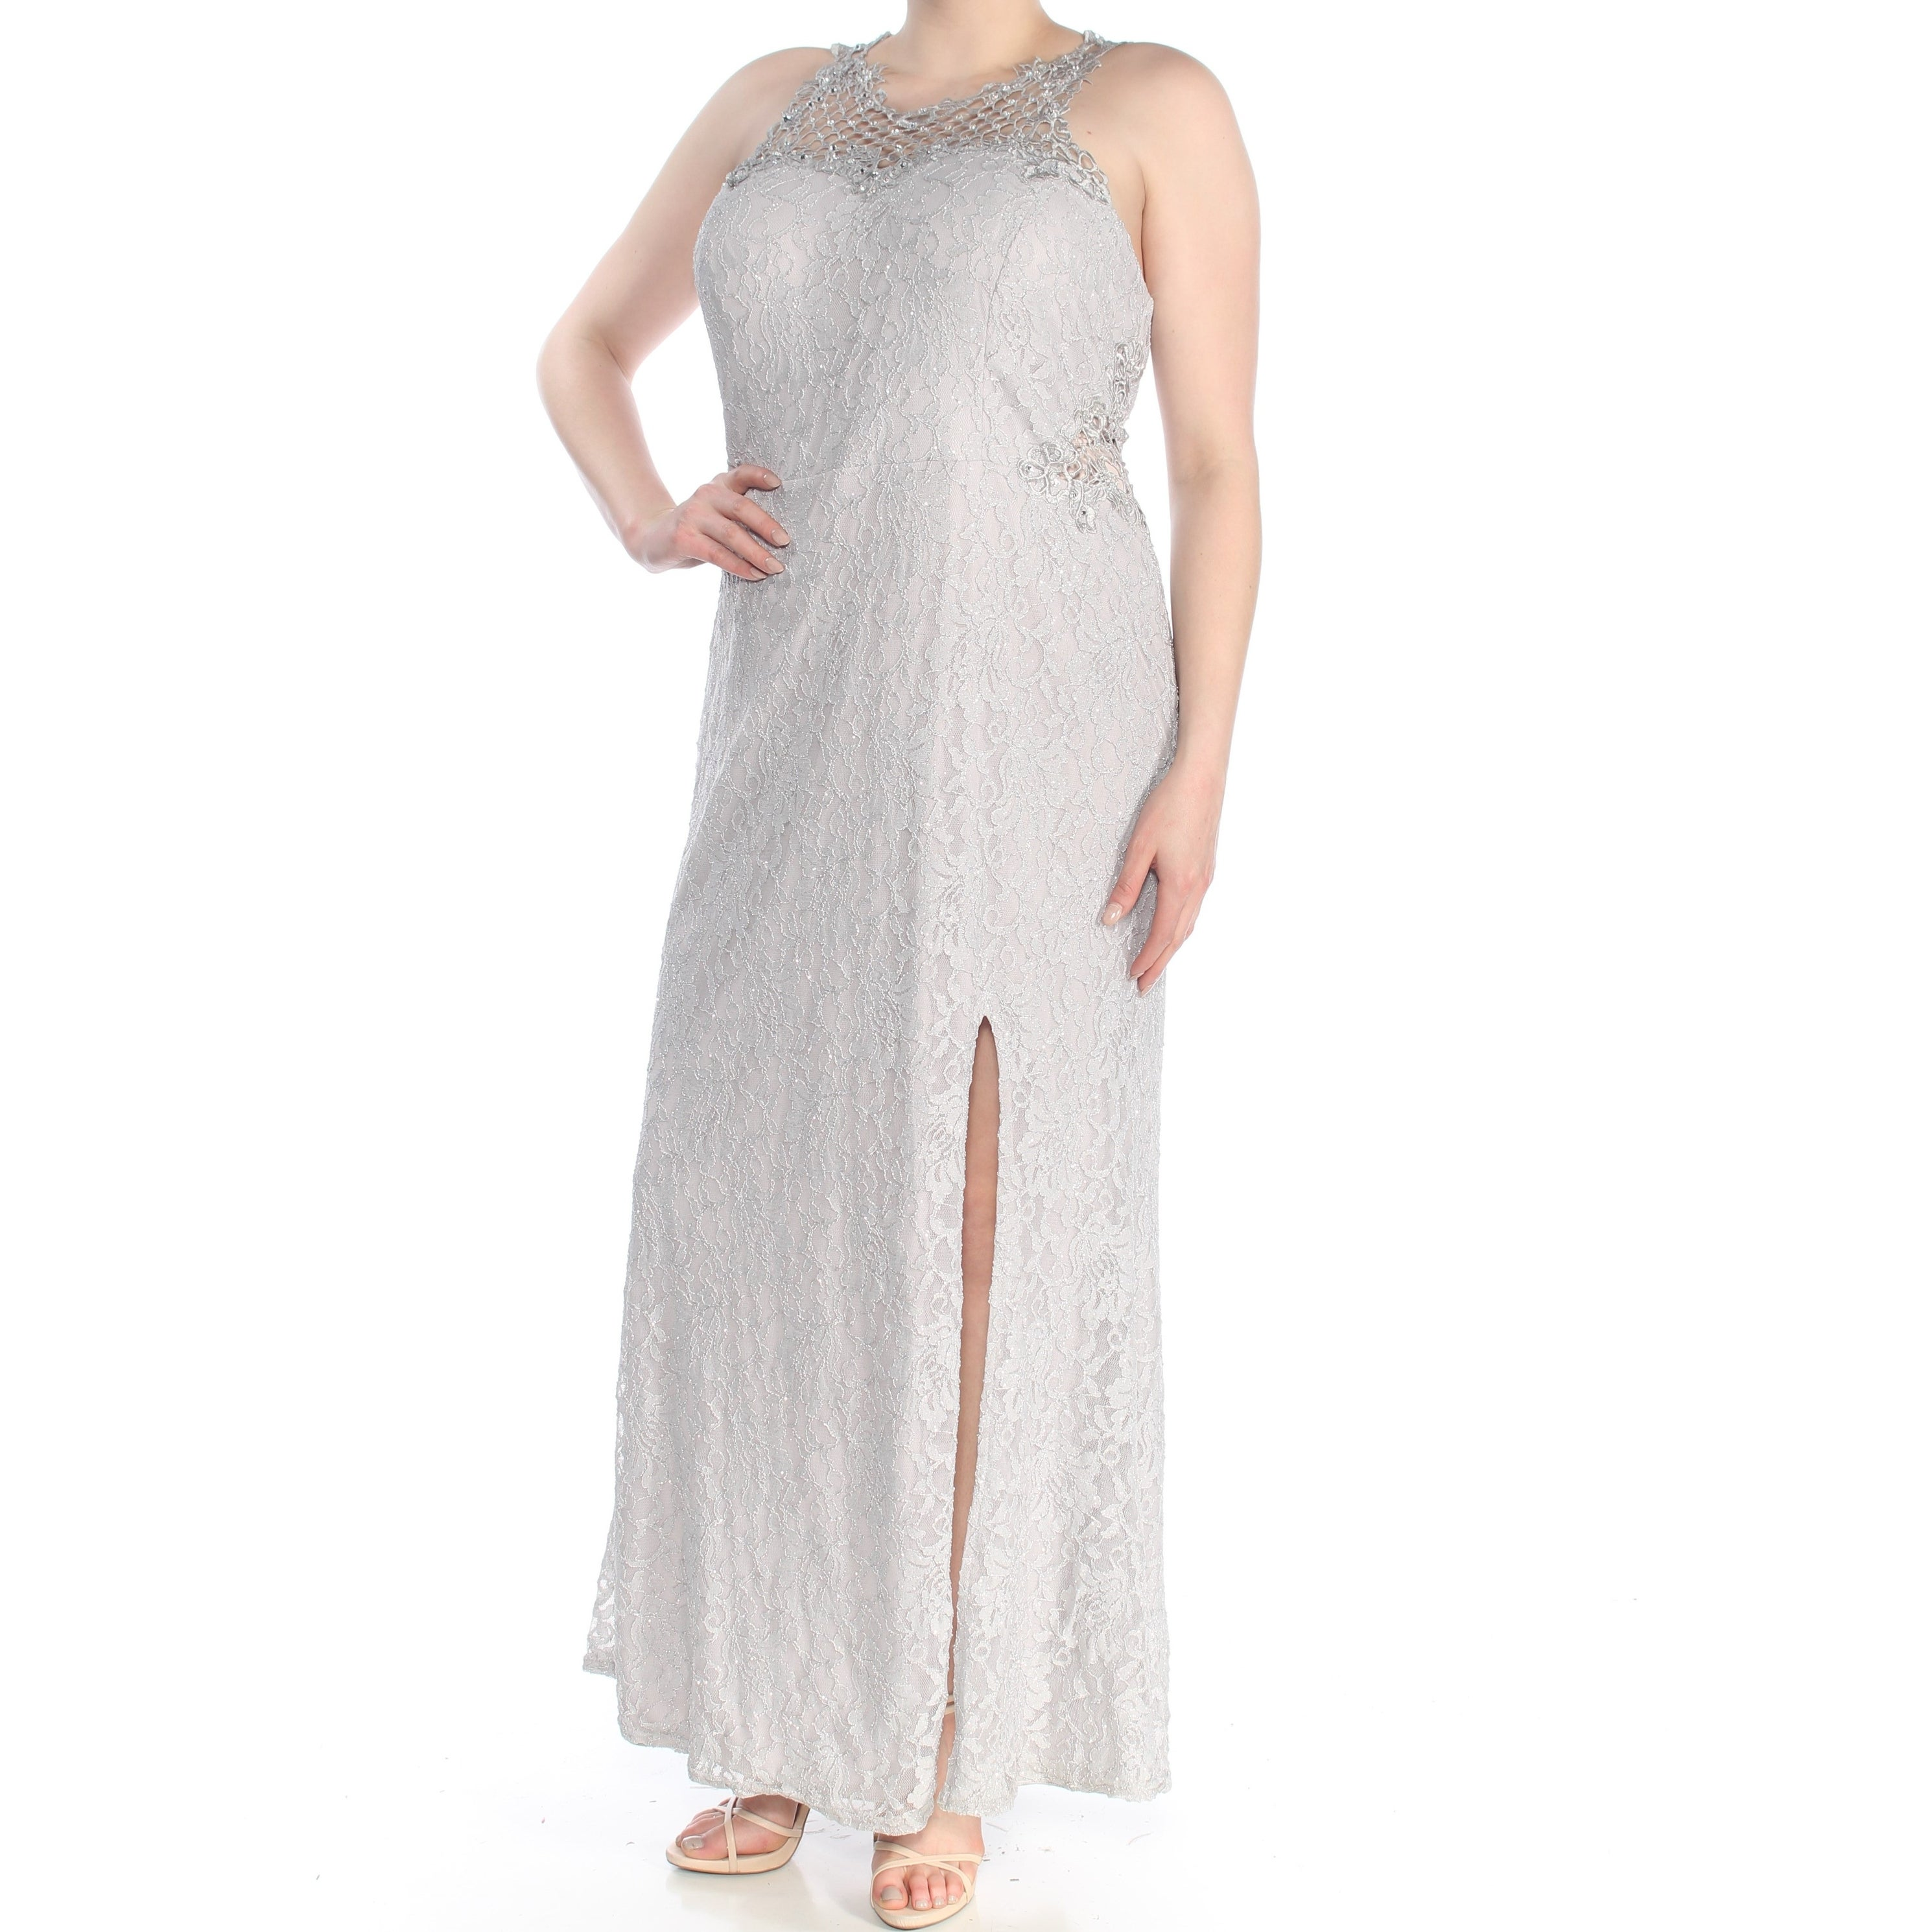 City Studio Womens Silver Lace Slitted Illusion Neckline Full Length Formal Dress Size 18